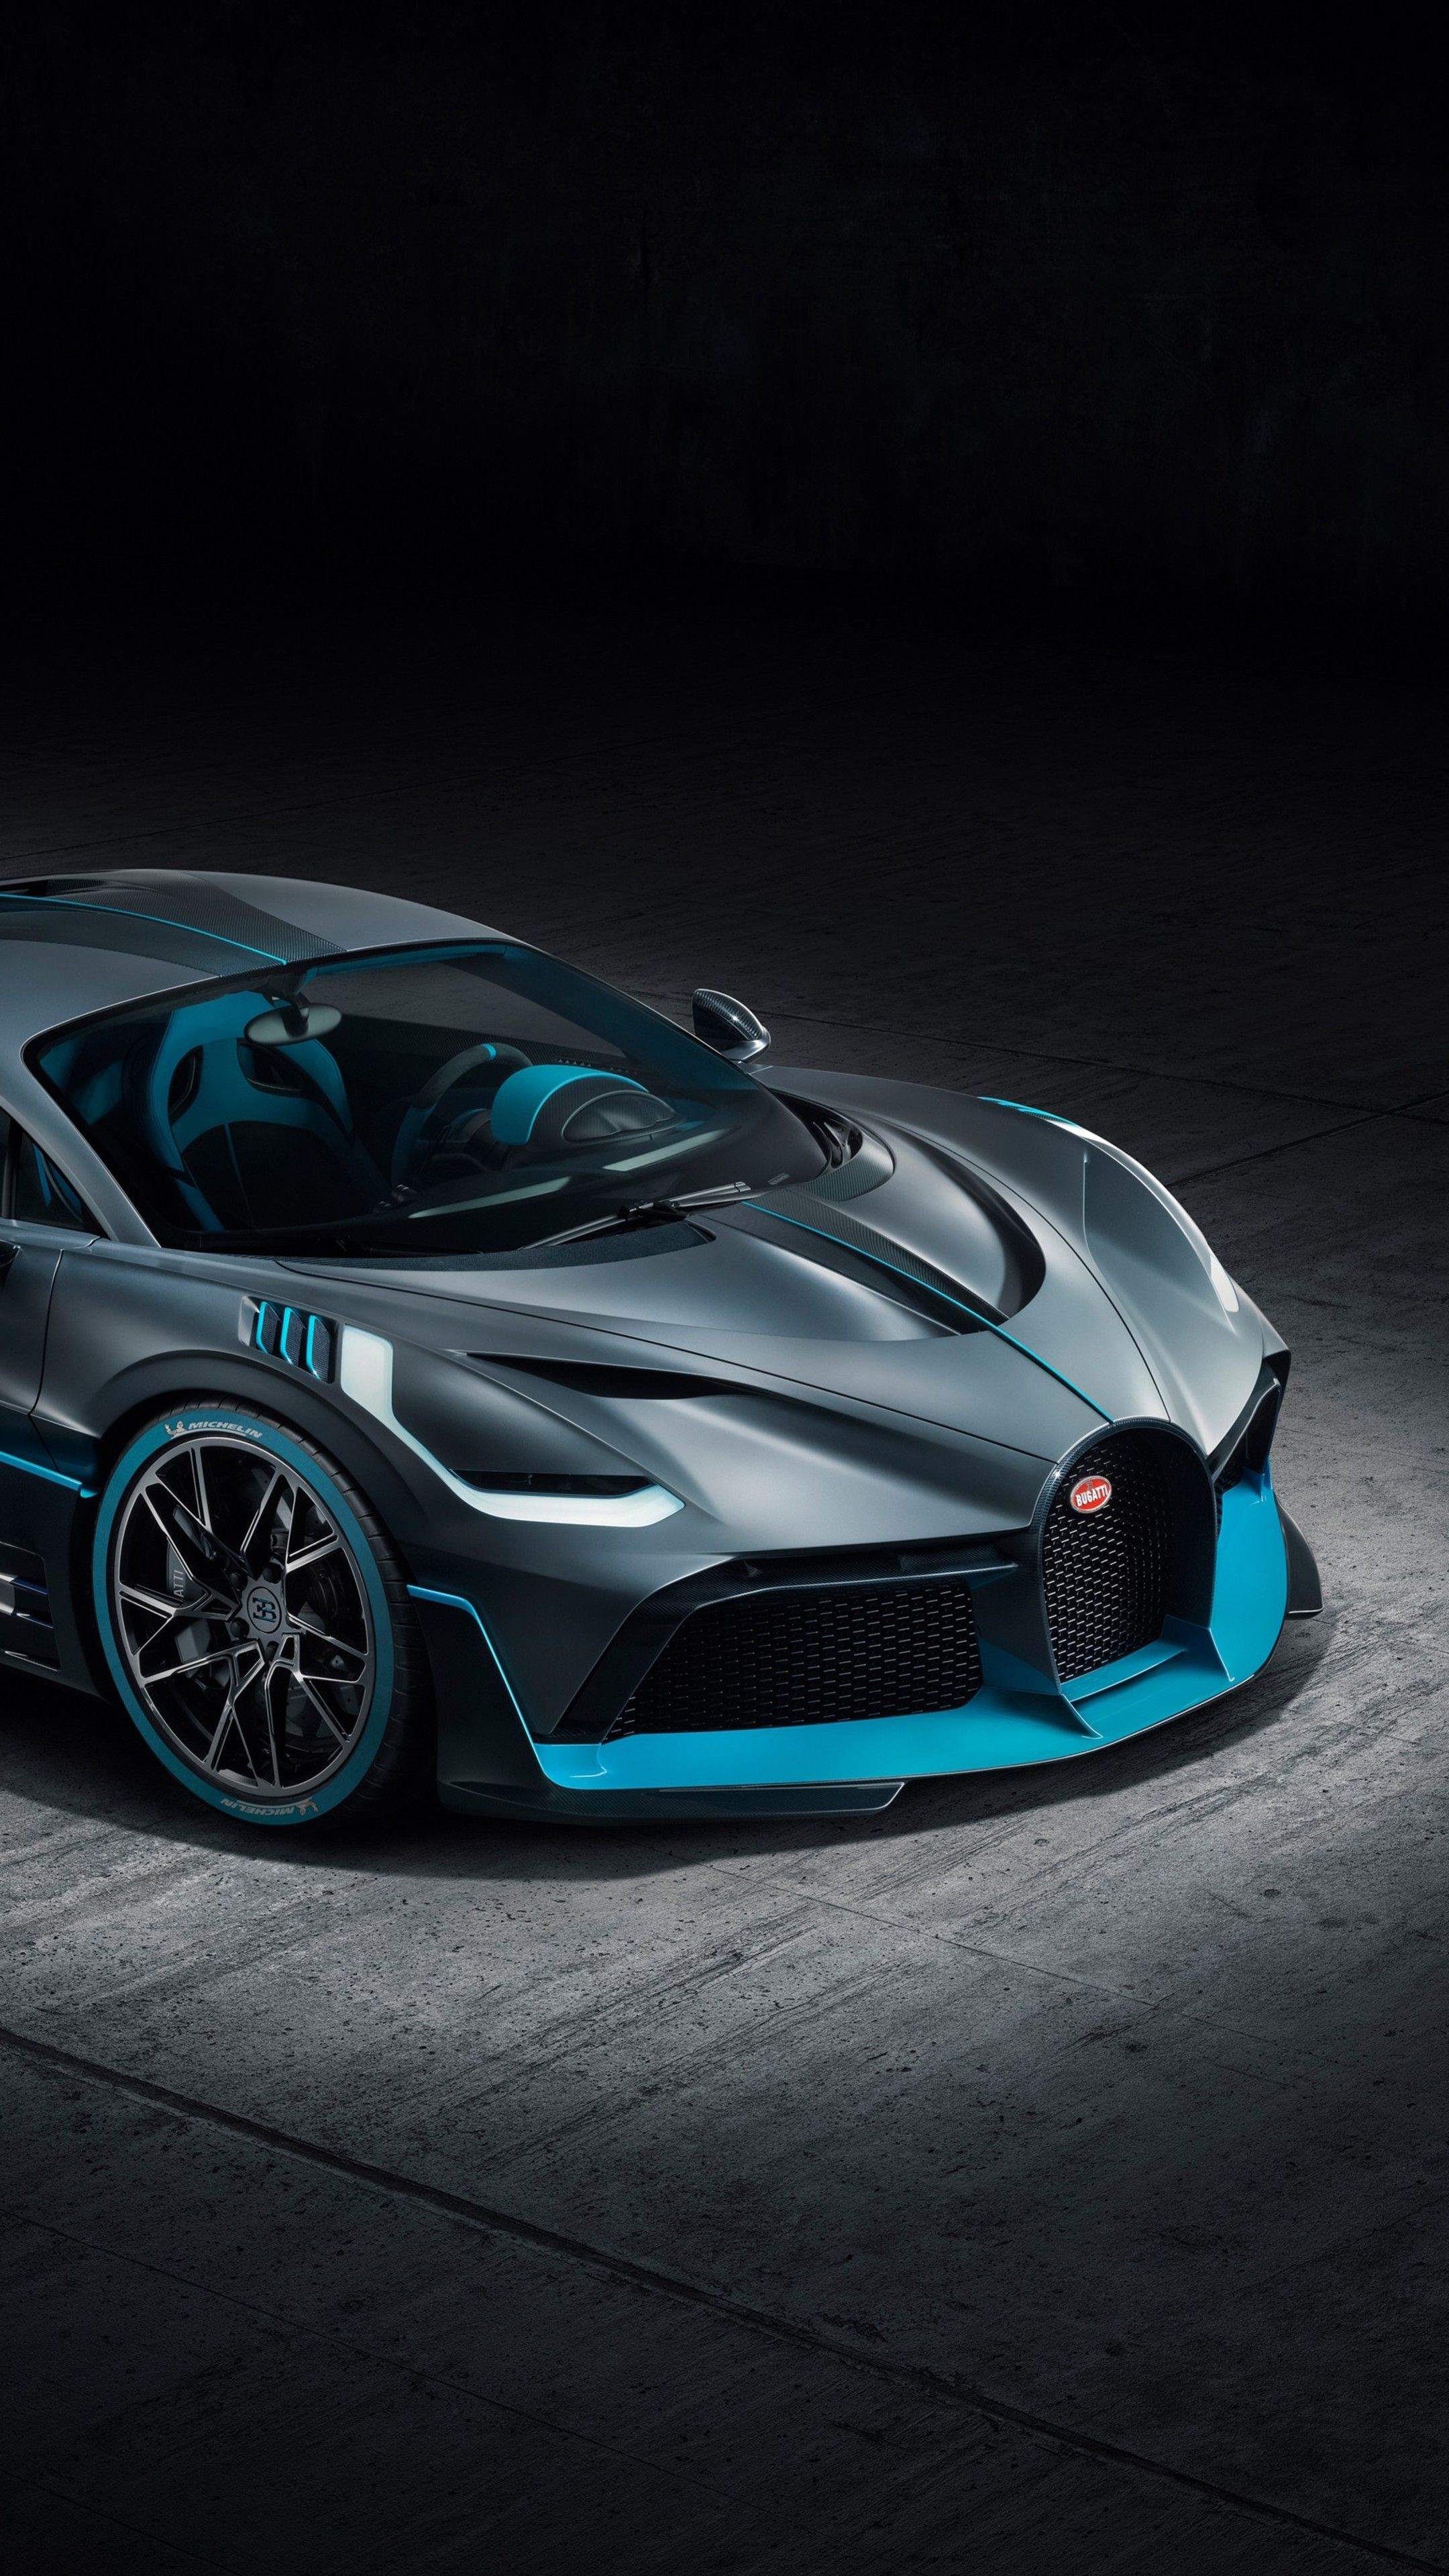 Cars Bugatti Divo 2018 Upper View Wallpapers Hd 4k Background For Android Best Luxury Cars Bugatti Cars Super Cars